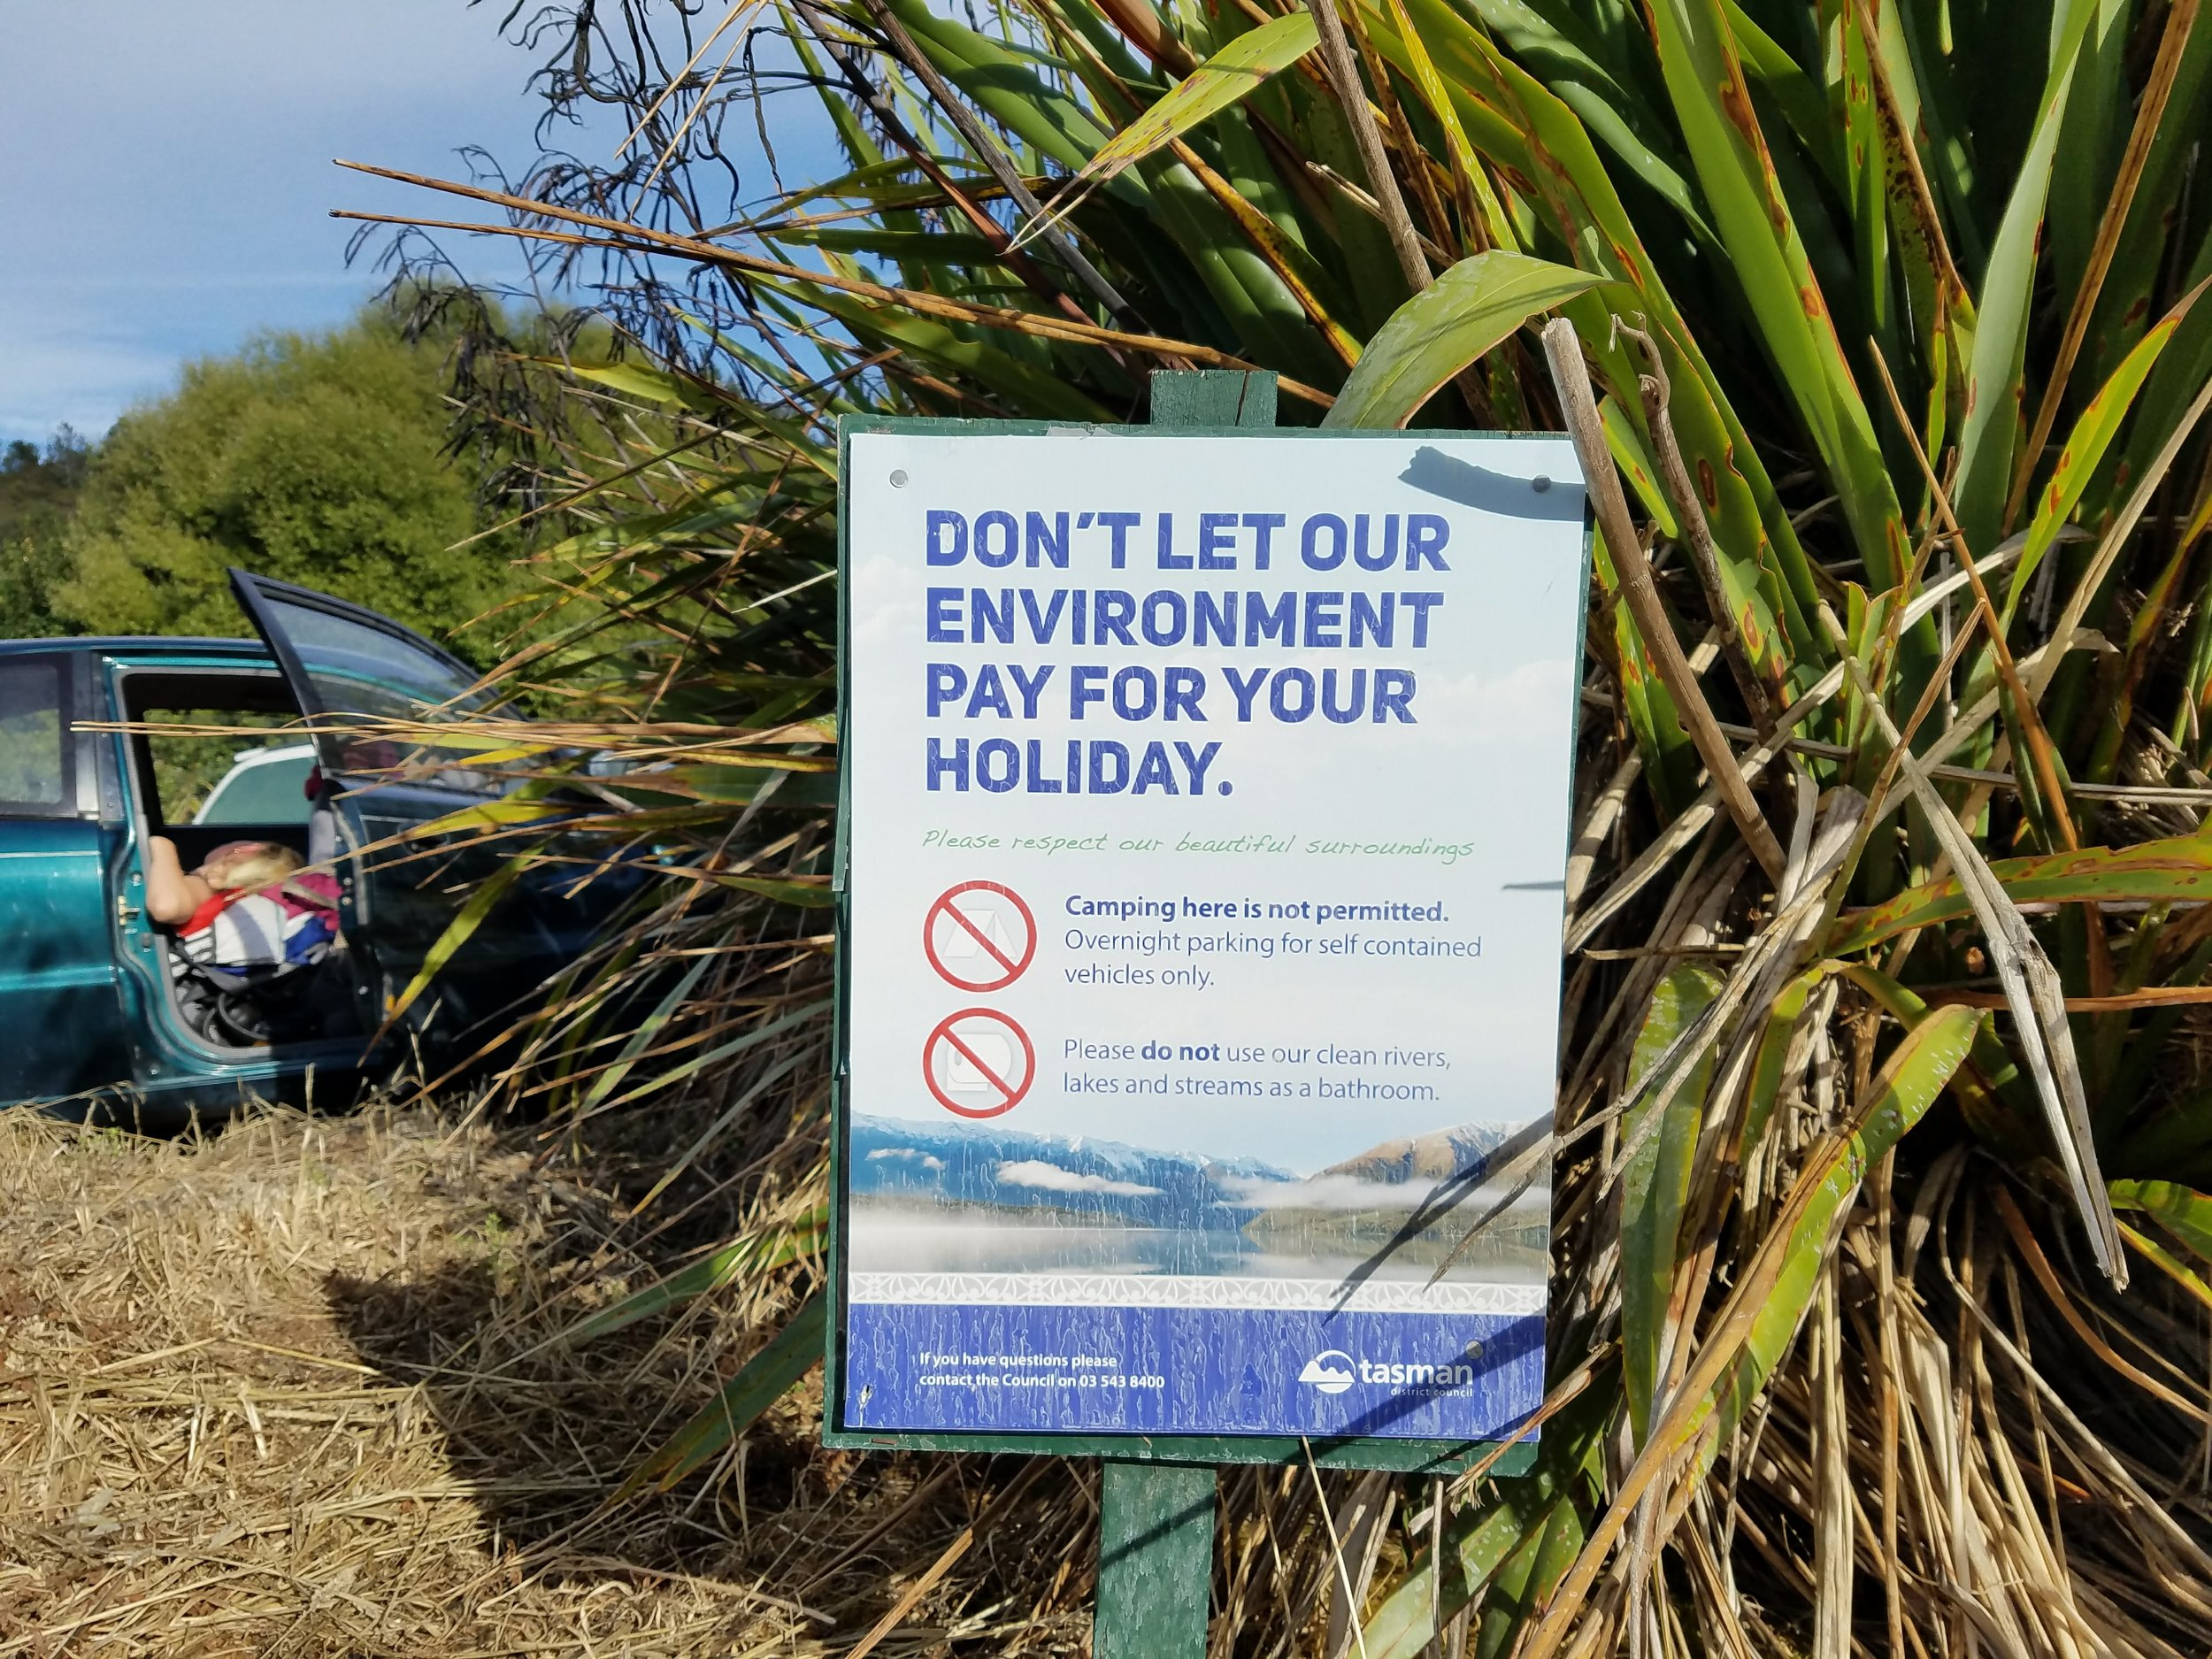 A sign we encountered at a New Zealand campsite.